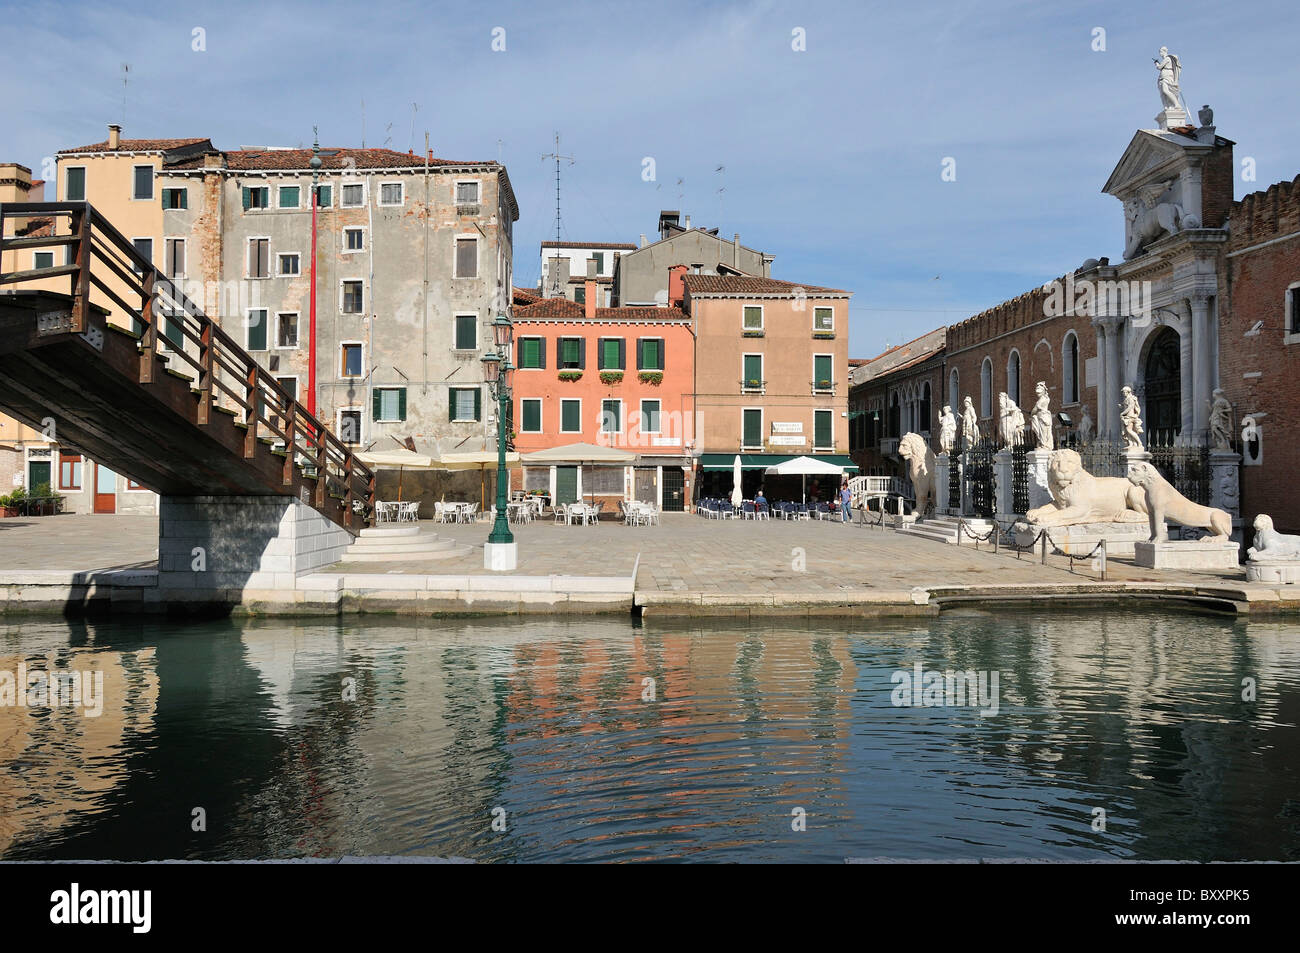 Venice. Italy. Entrance to the Arsenale in the Castello district. - Stock Image